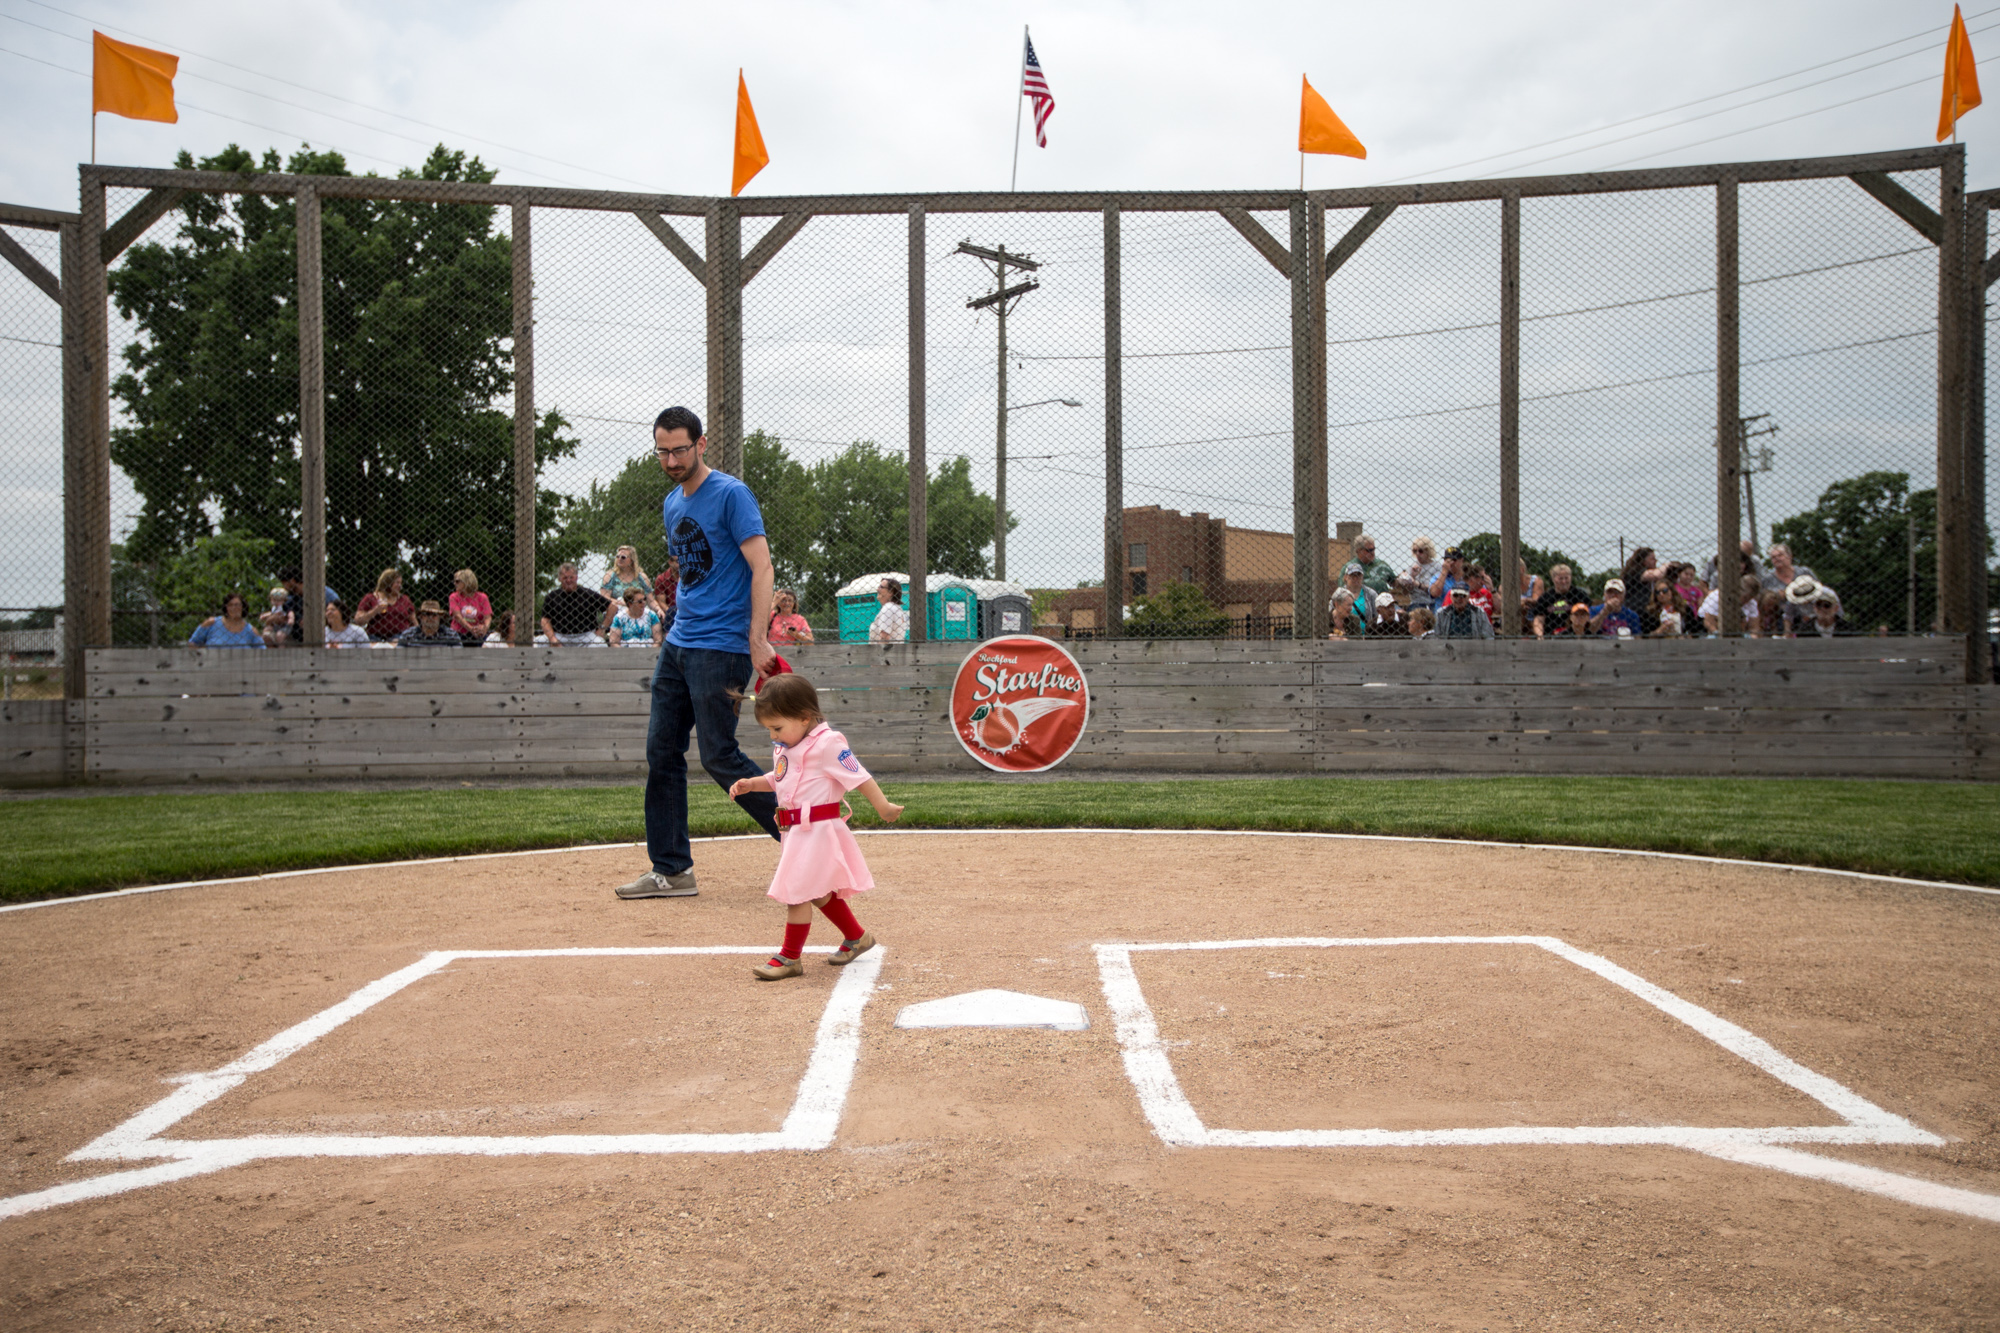 Rockford Mayor Tom McNamara and his daughter Olympia Rose walk across home plate before an exhibition game on Saturday, June 2, 2018, at Beyer Stadium in Rockford. McNamara threw out the first pitch of the game. [SCOTT P. YATES/RRSTAR.COM STAFF]